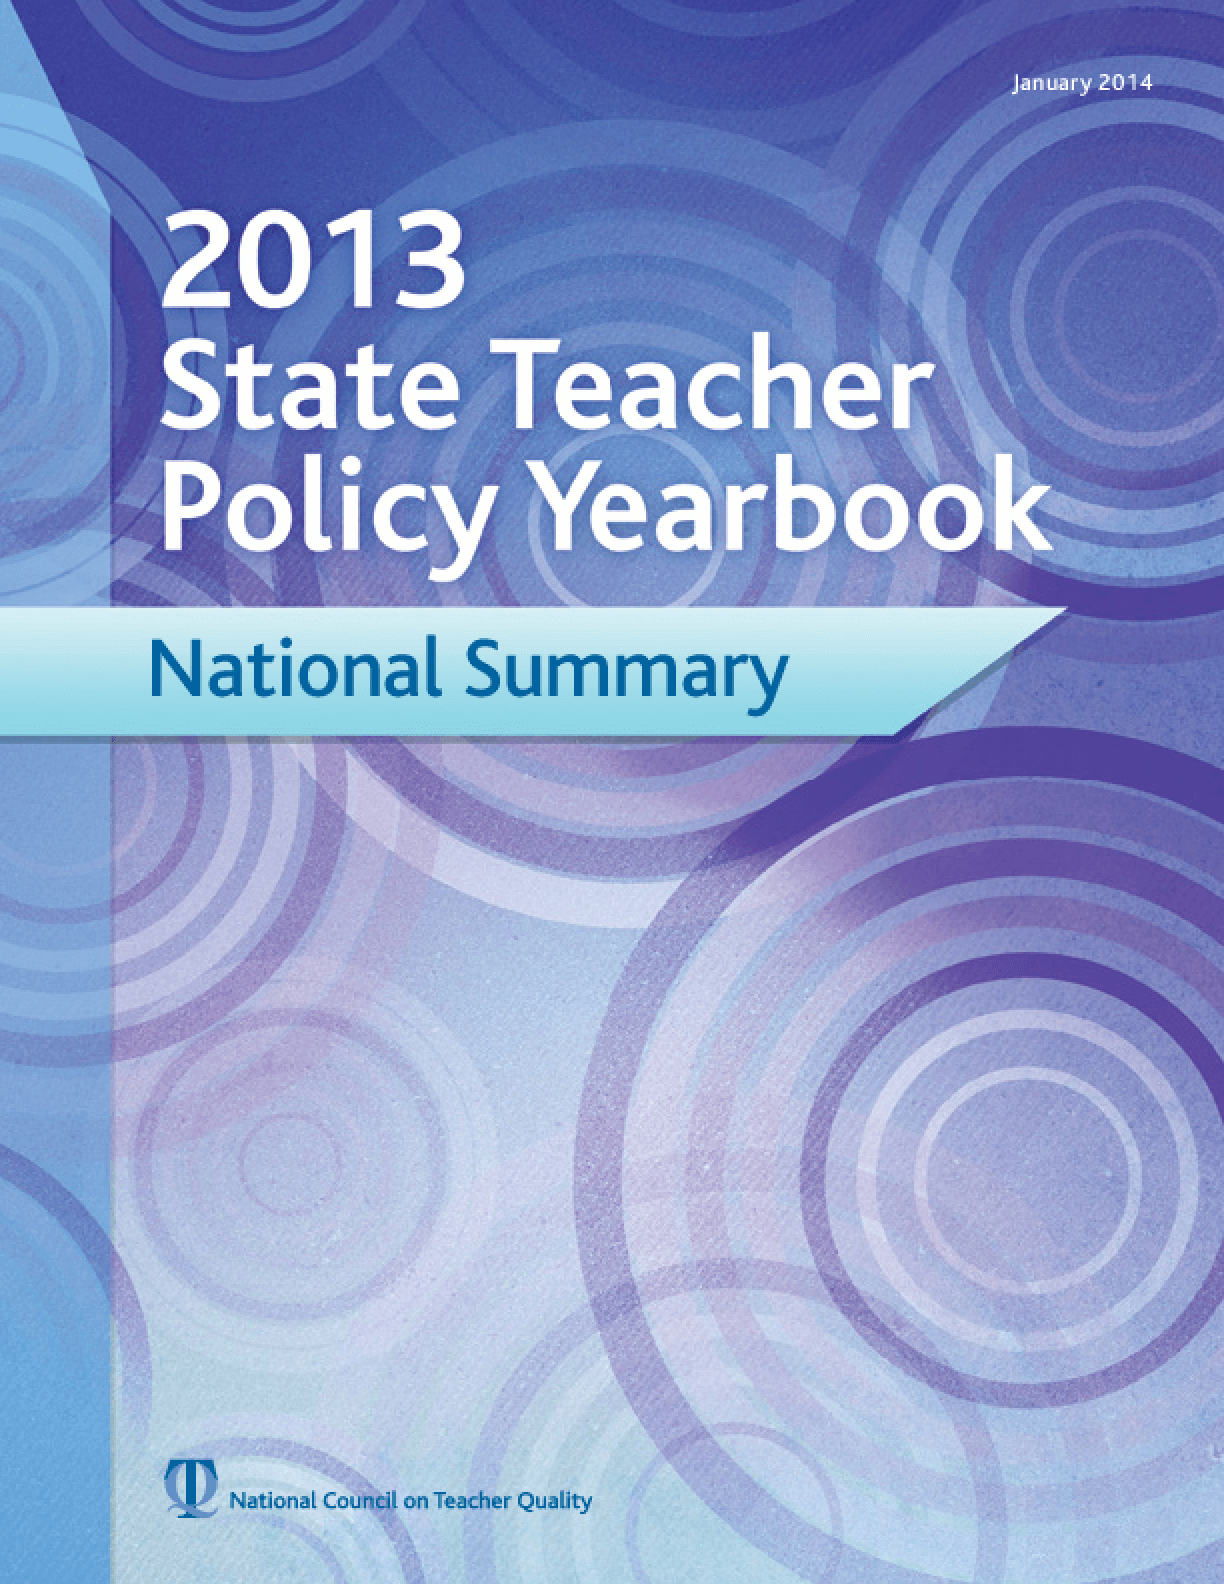 2013 State Teacher Policy Yearbook: National Summary